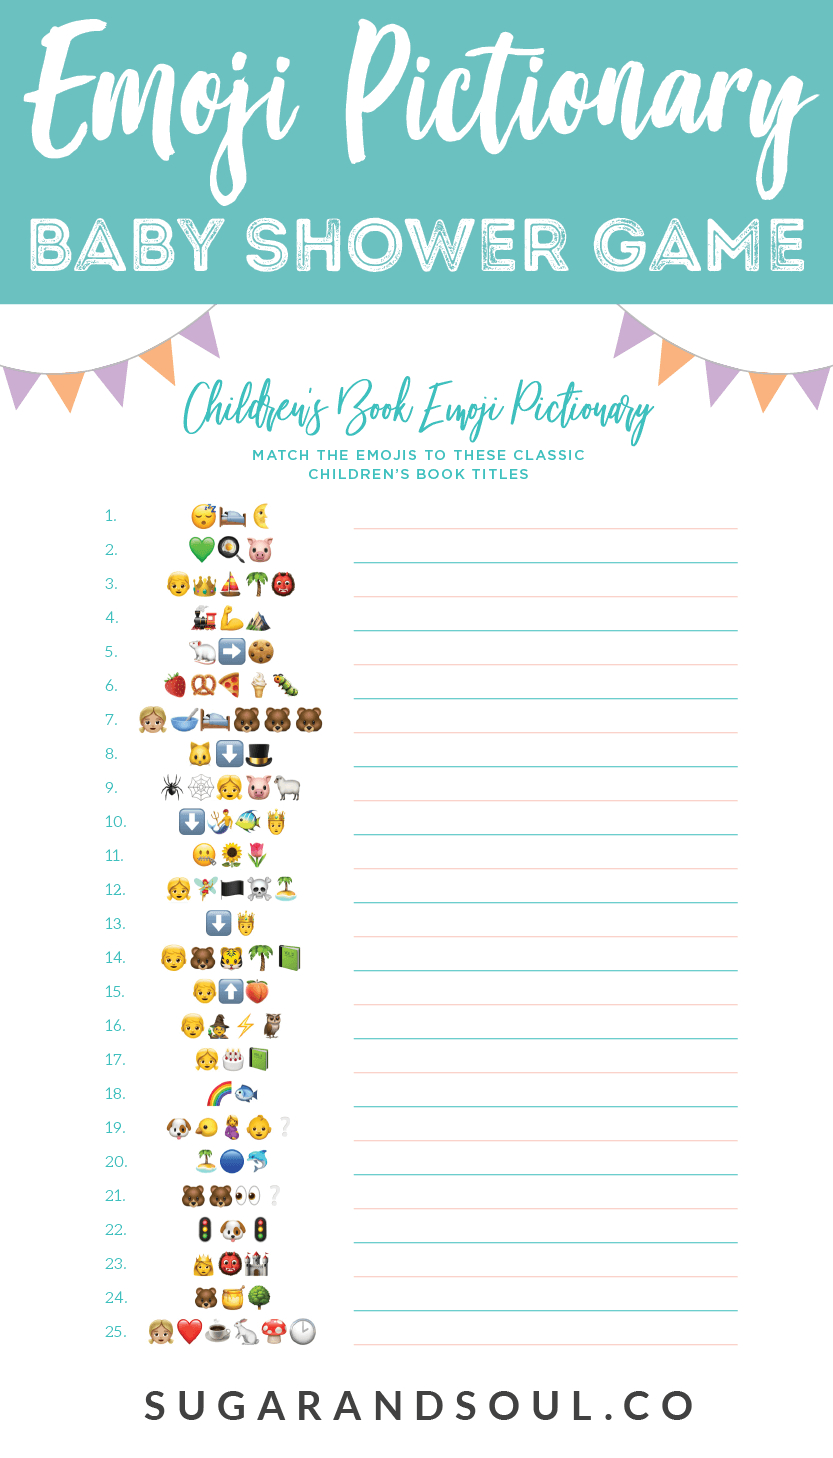 This Free Emoji Pictionary Baby Shower Game Printable Uses Emoji - Free Printable Baby Shower Games With Answer Key